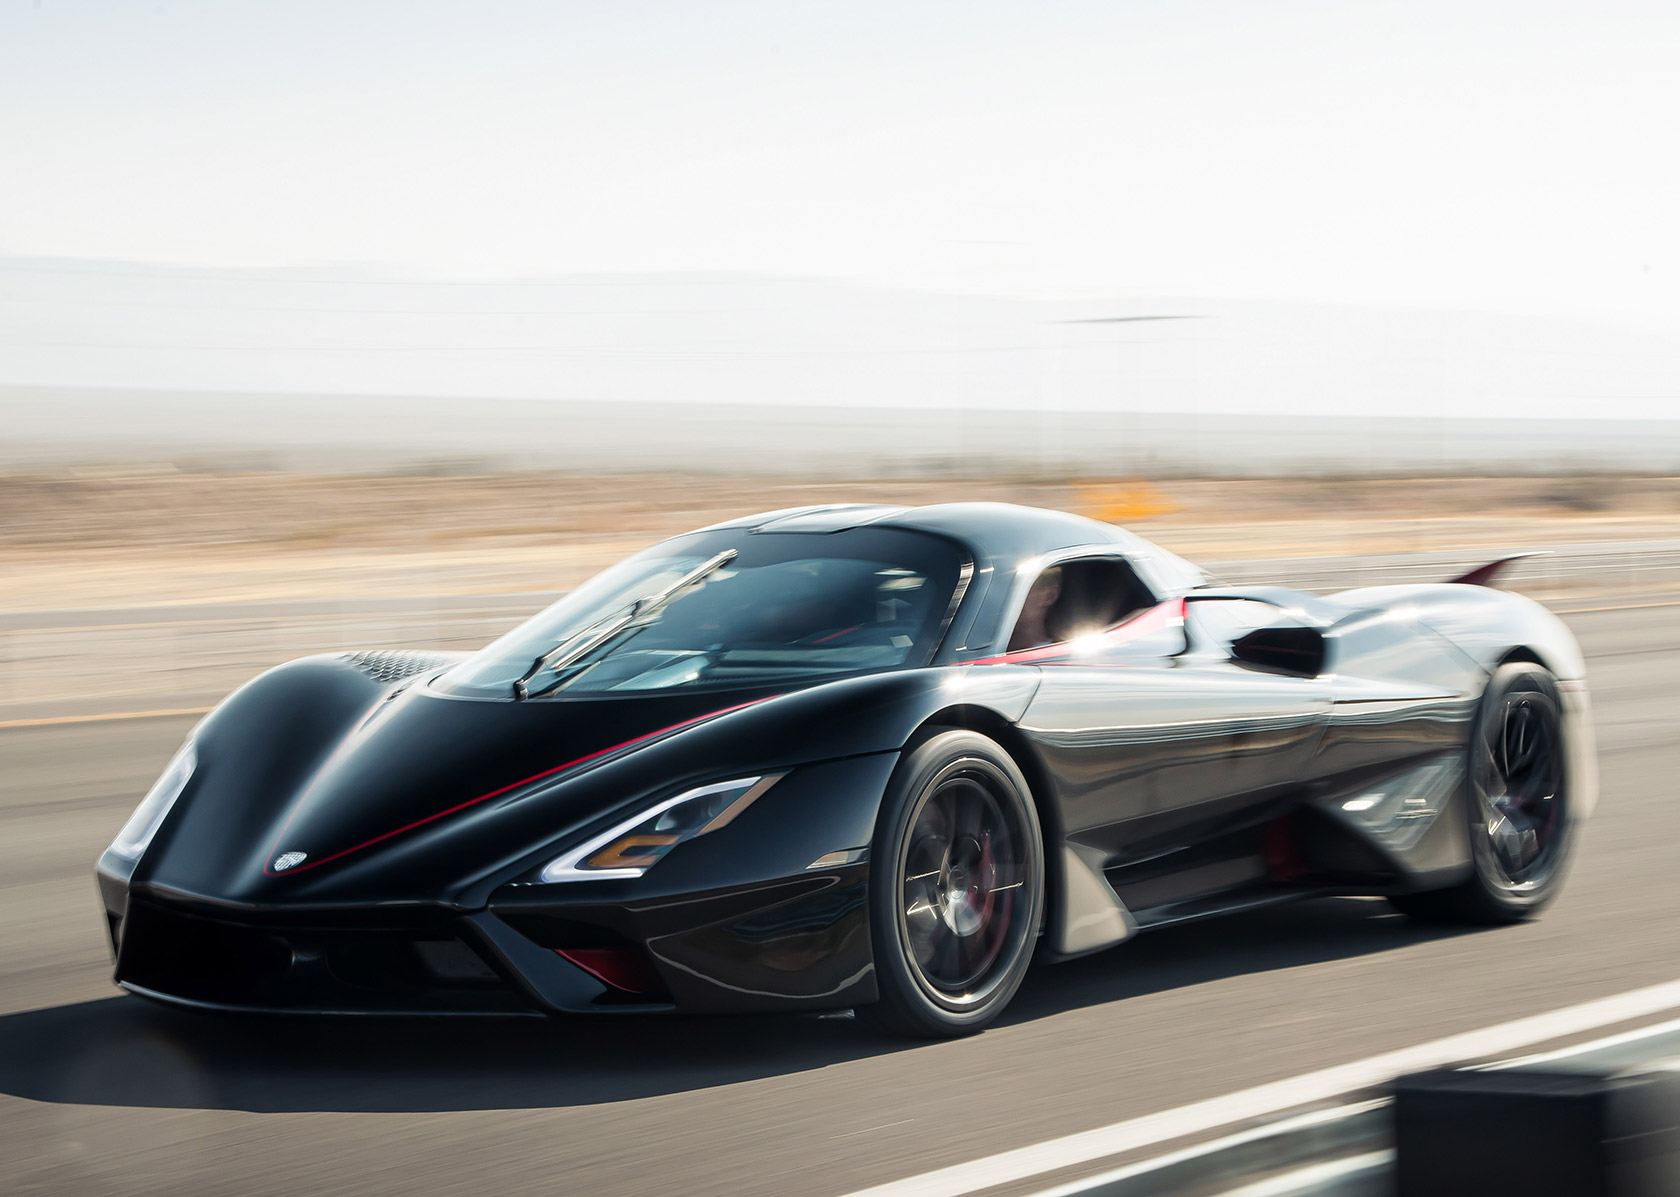 SSC Tuatara 331MPH Fastest Production Car